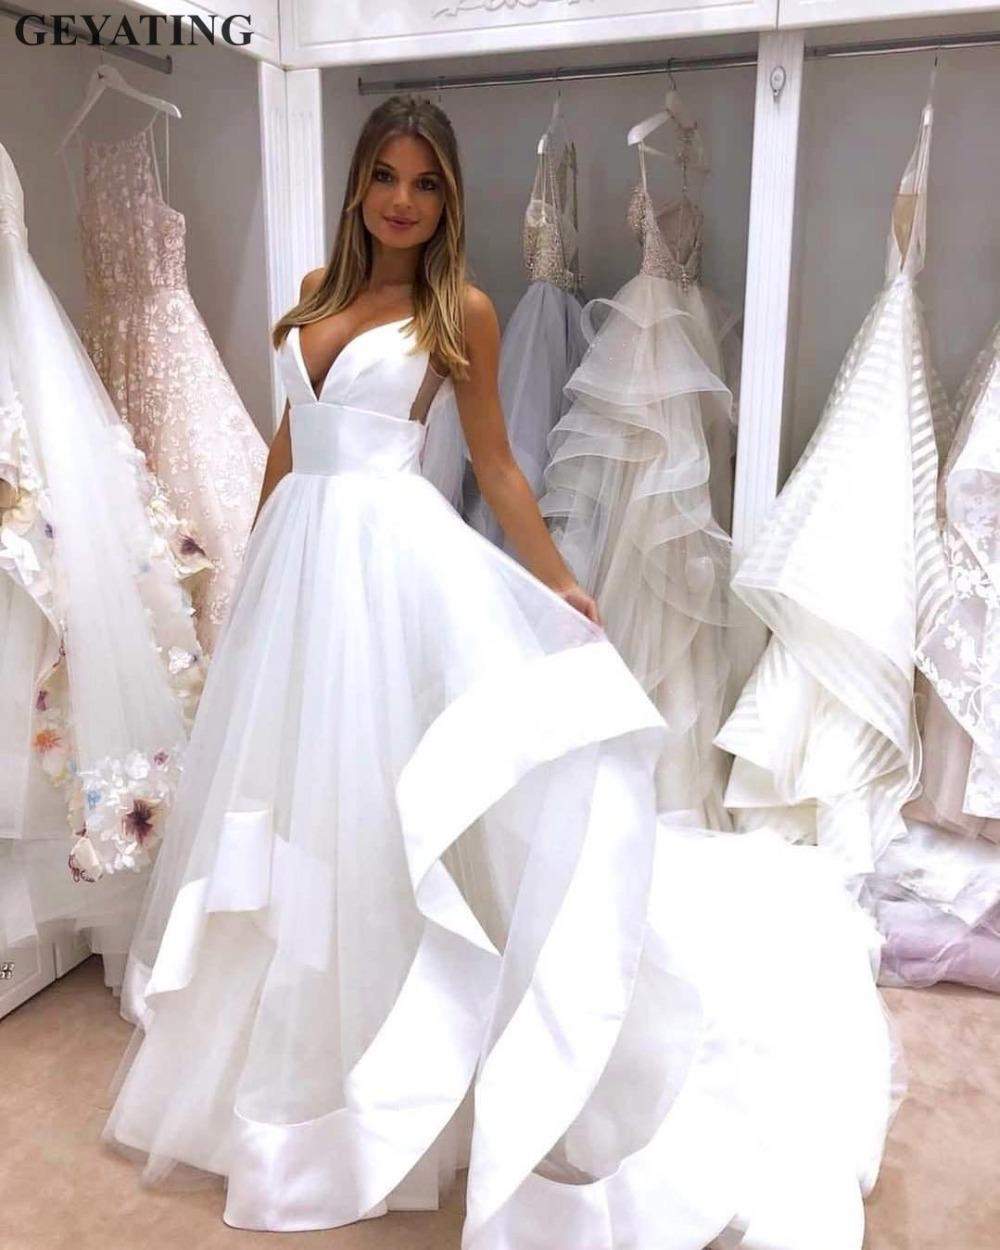 f4d5130af Sexy Spaghetti Straps Open Back Wedding Dress 2019 White Satin Ruffles  Puffy Tulle A-line Beach Bridal Gowns Cheap Made in China